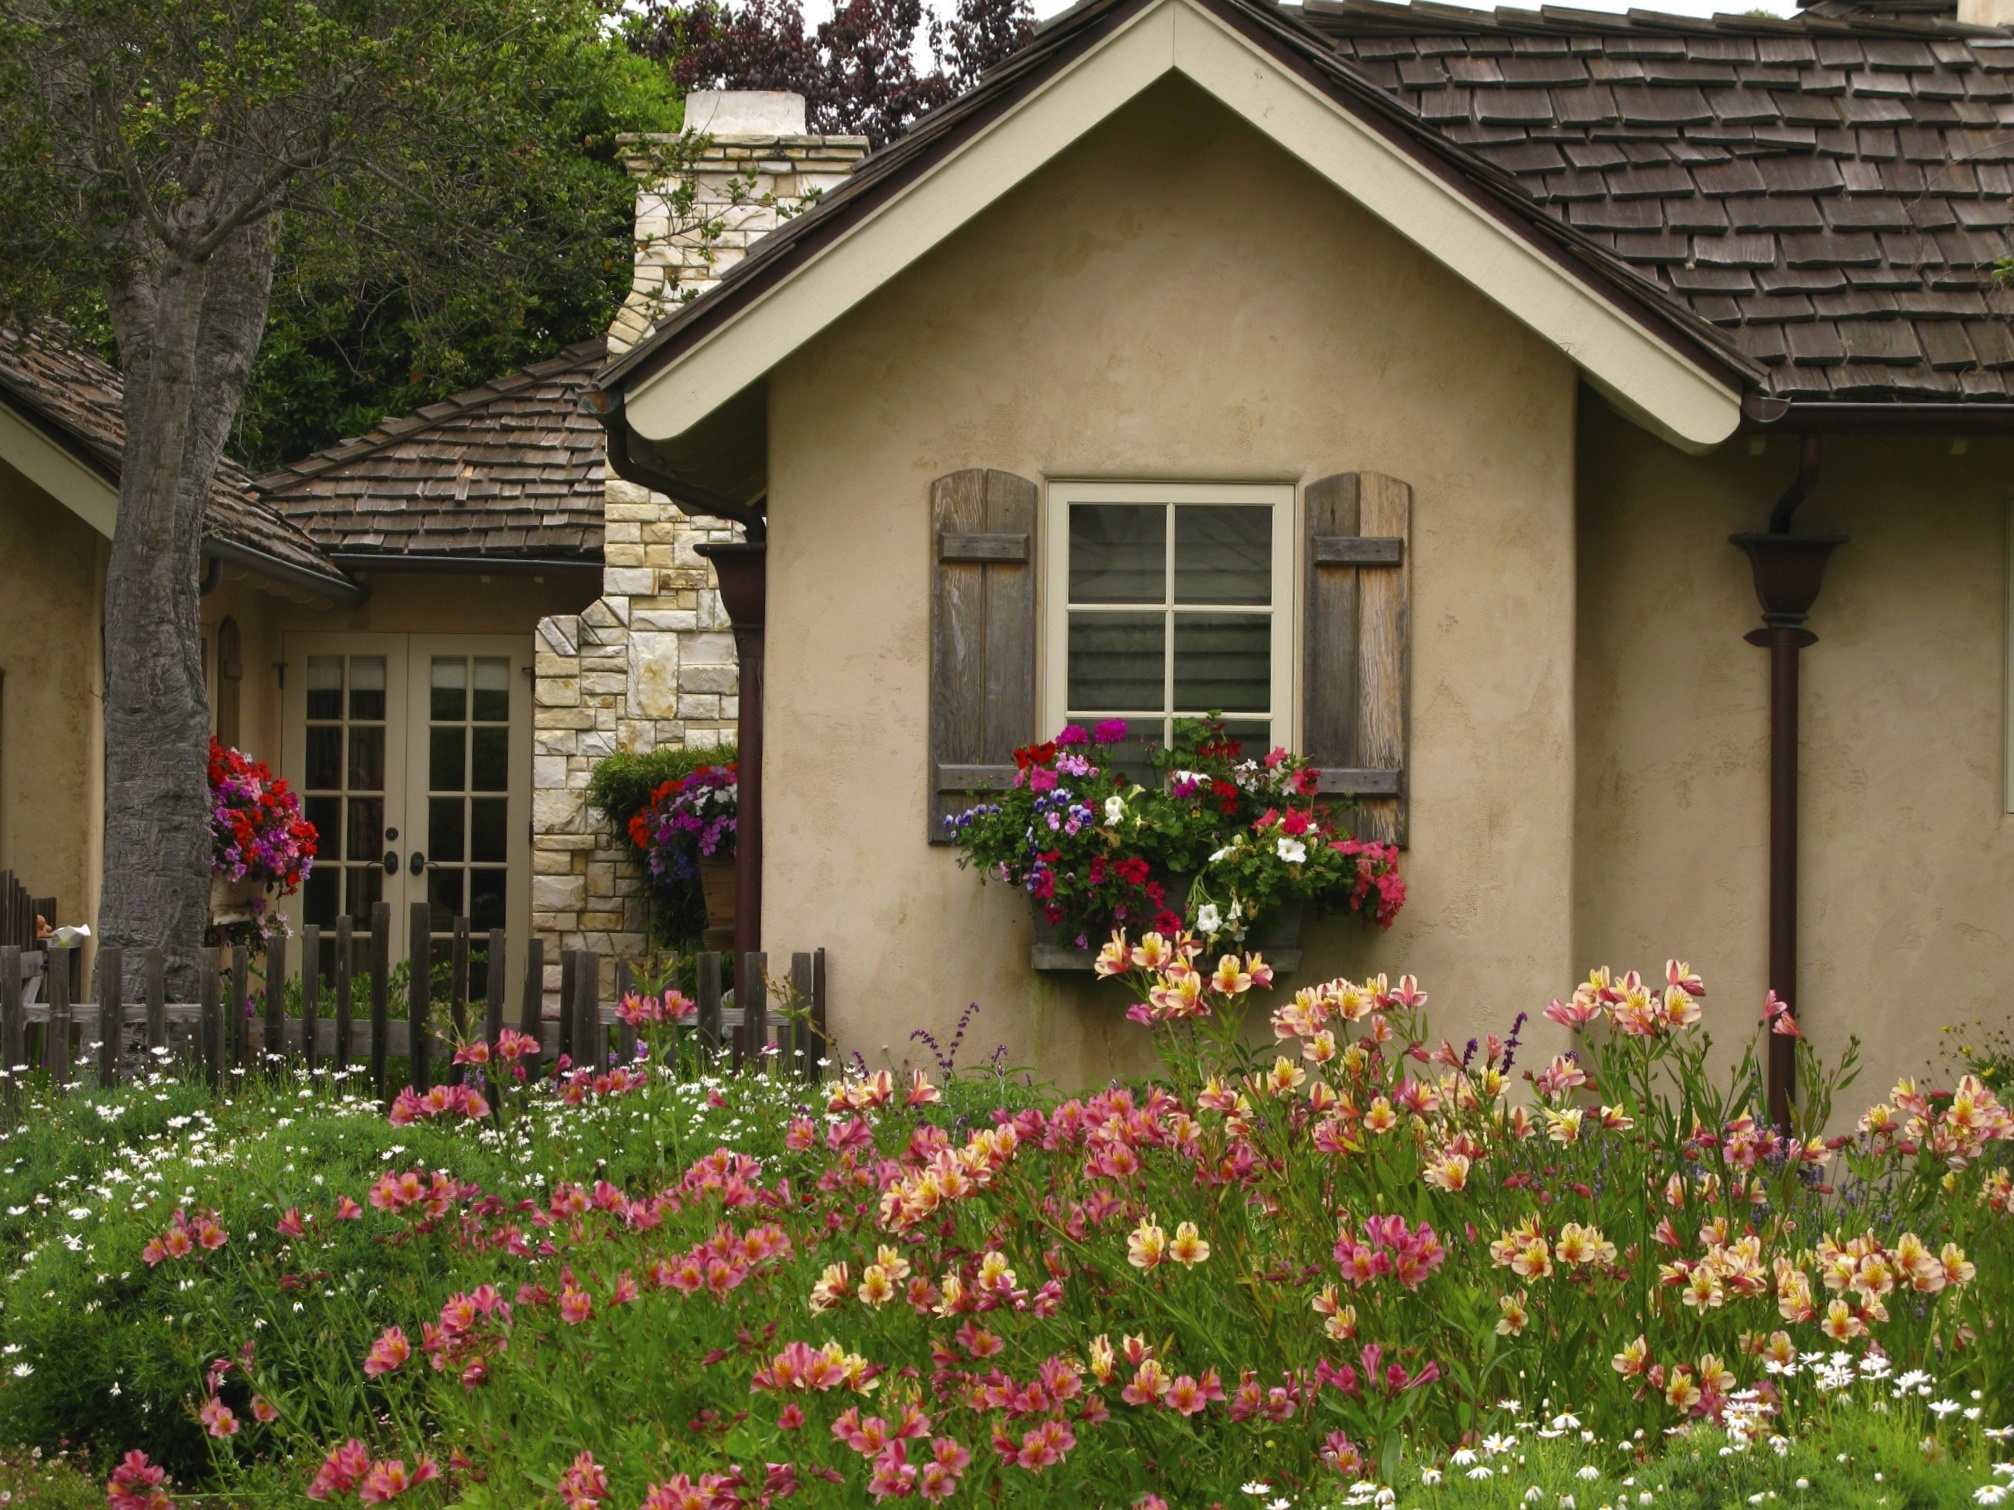 CARMELS COTTAGE GARDENS Once upon a timeTales from